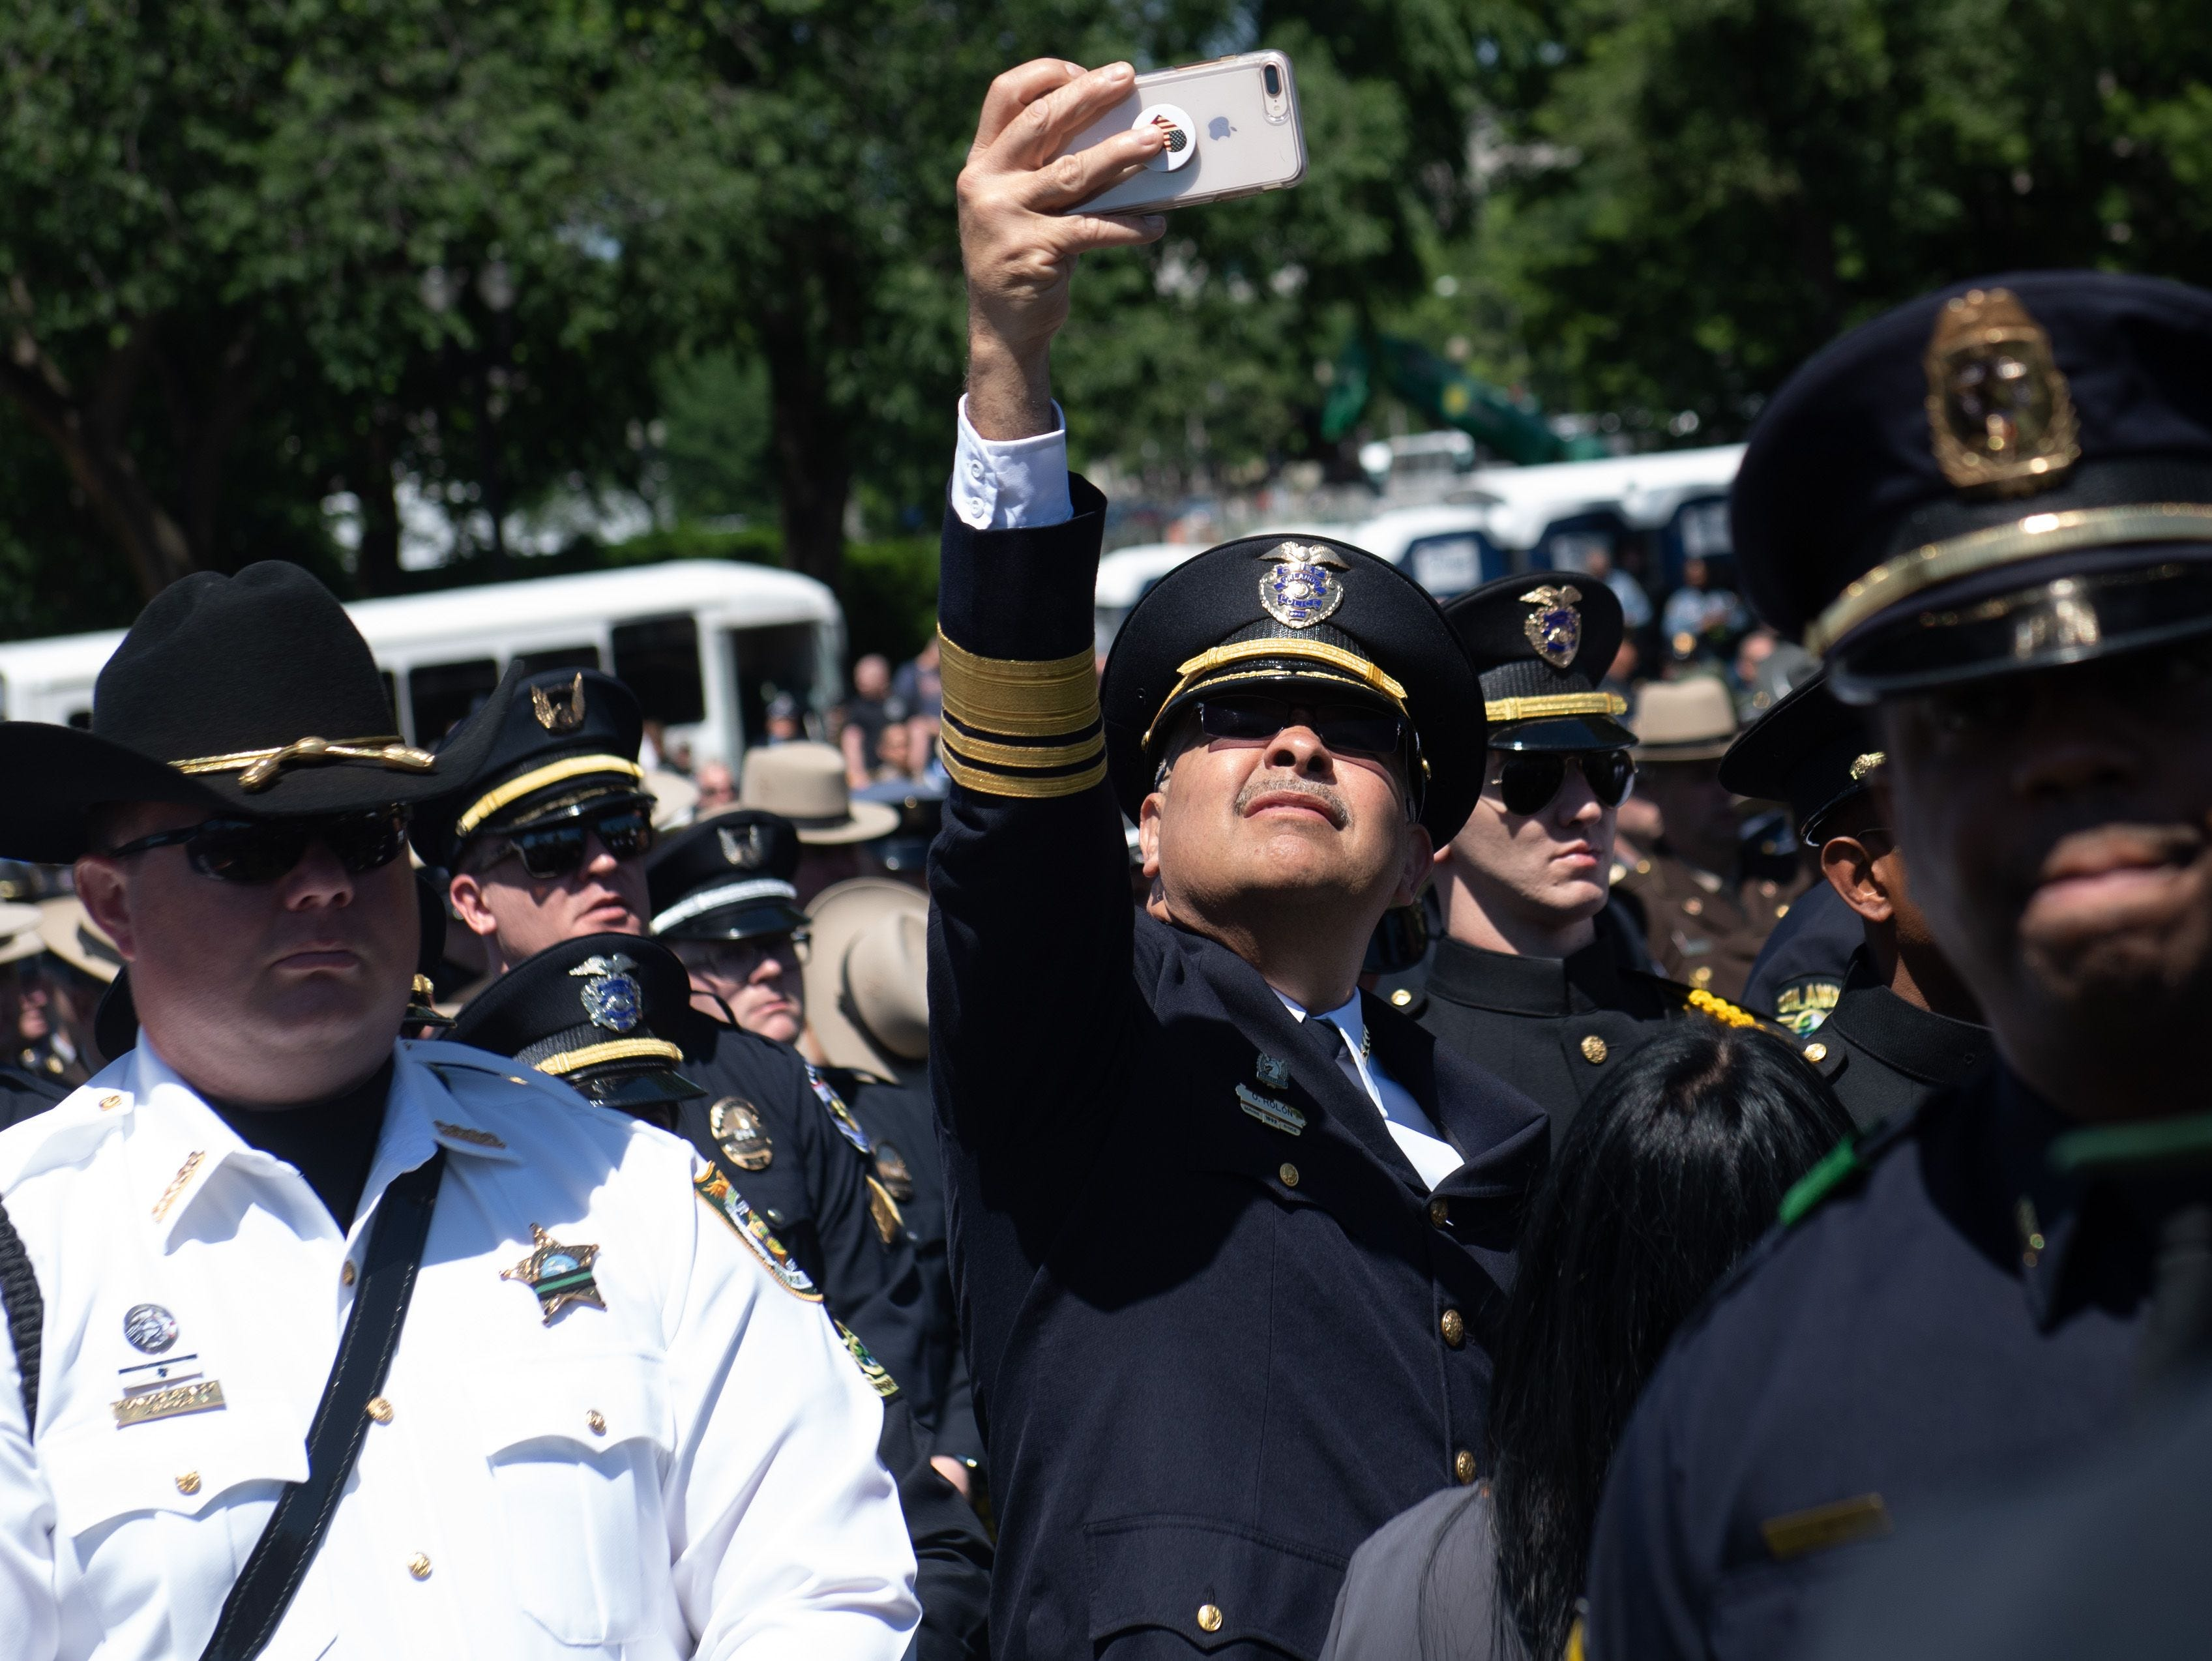 A police officer uses his phone to take a photo during the 38th Annual National Peace Officers'  Memorial Service honoring law enforcement officers who were killed in the line of duty, at the US Capitol.